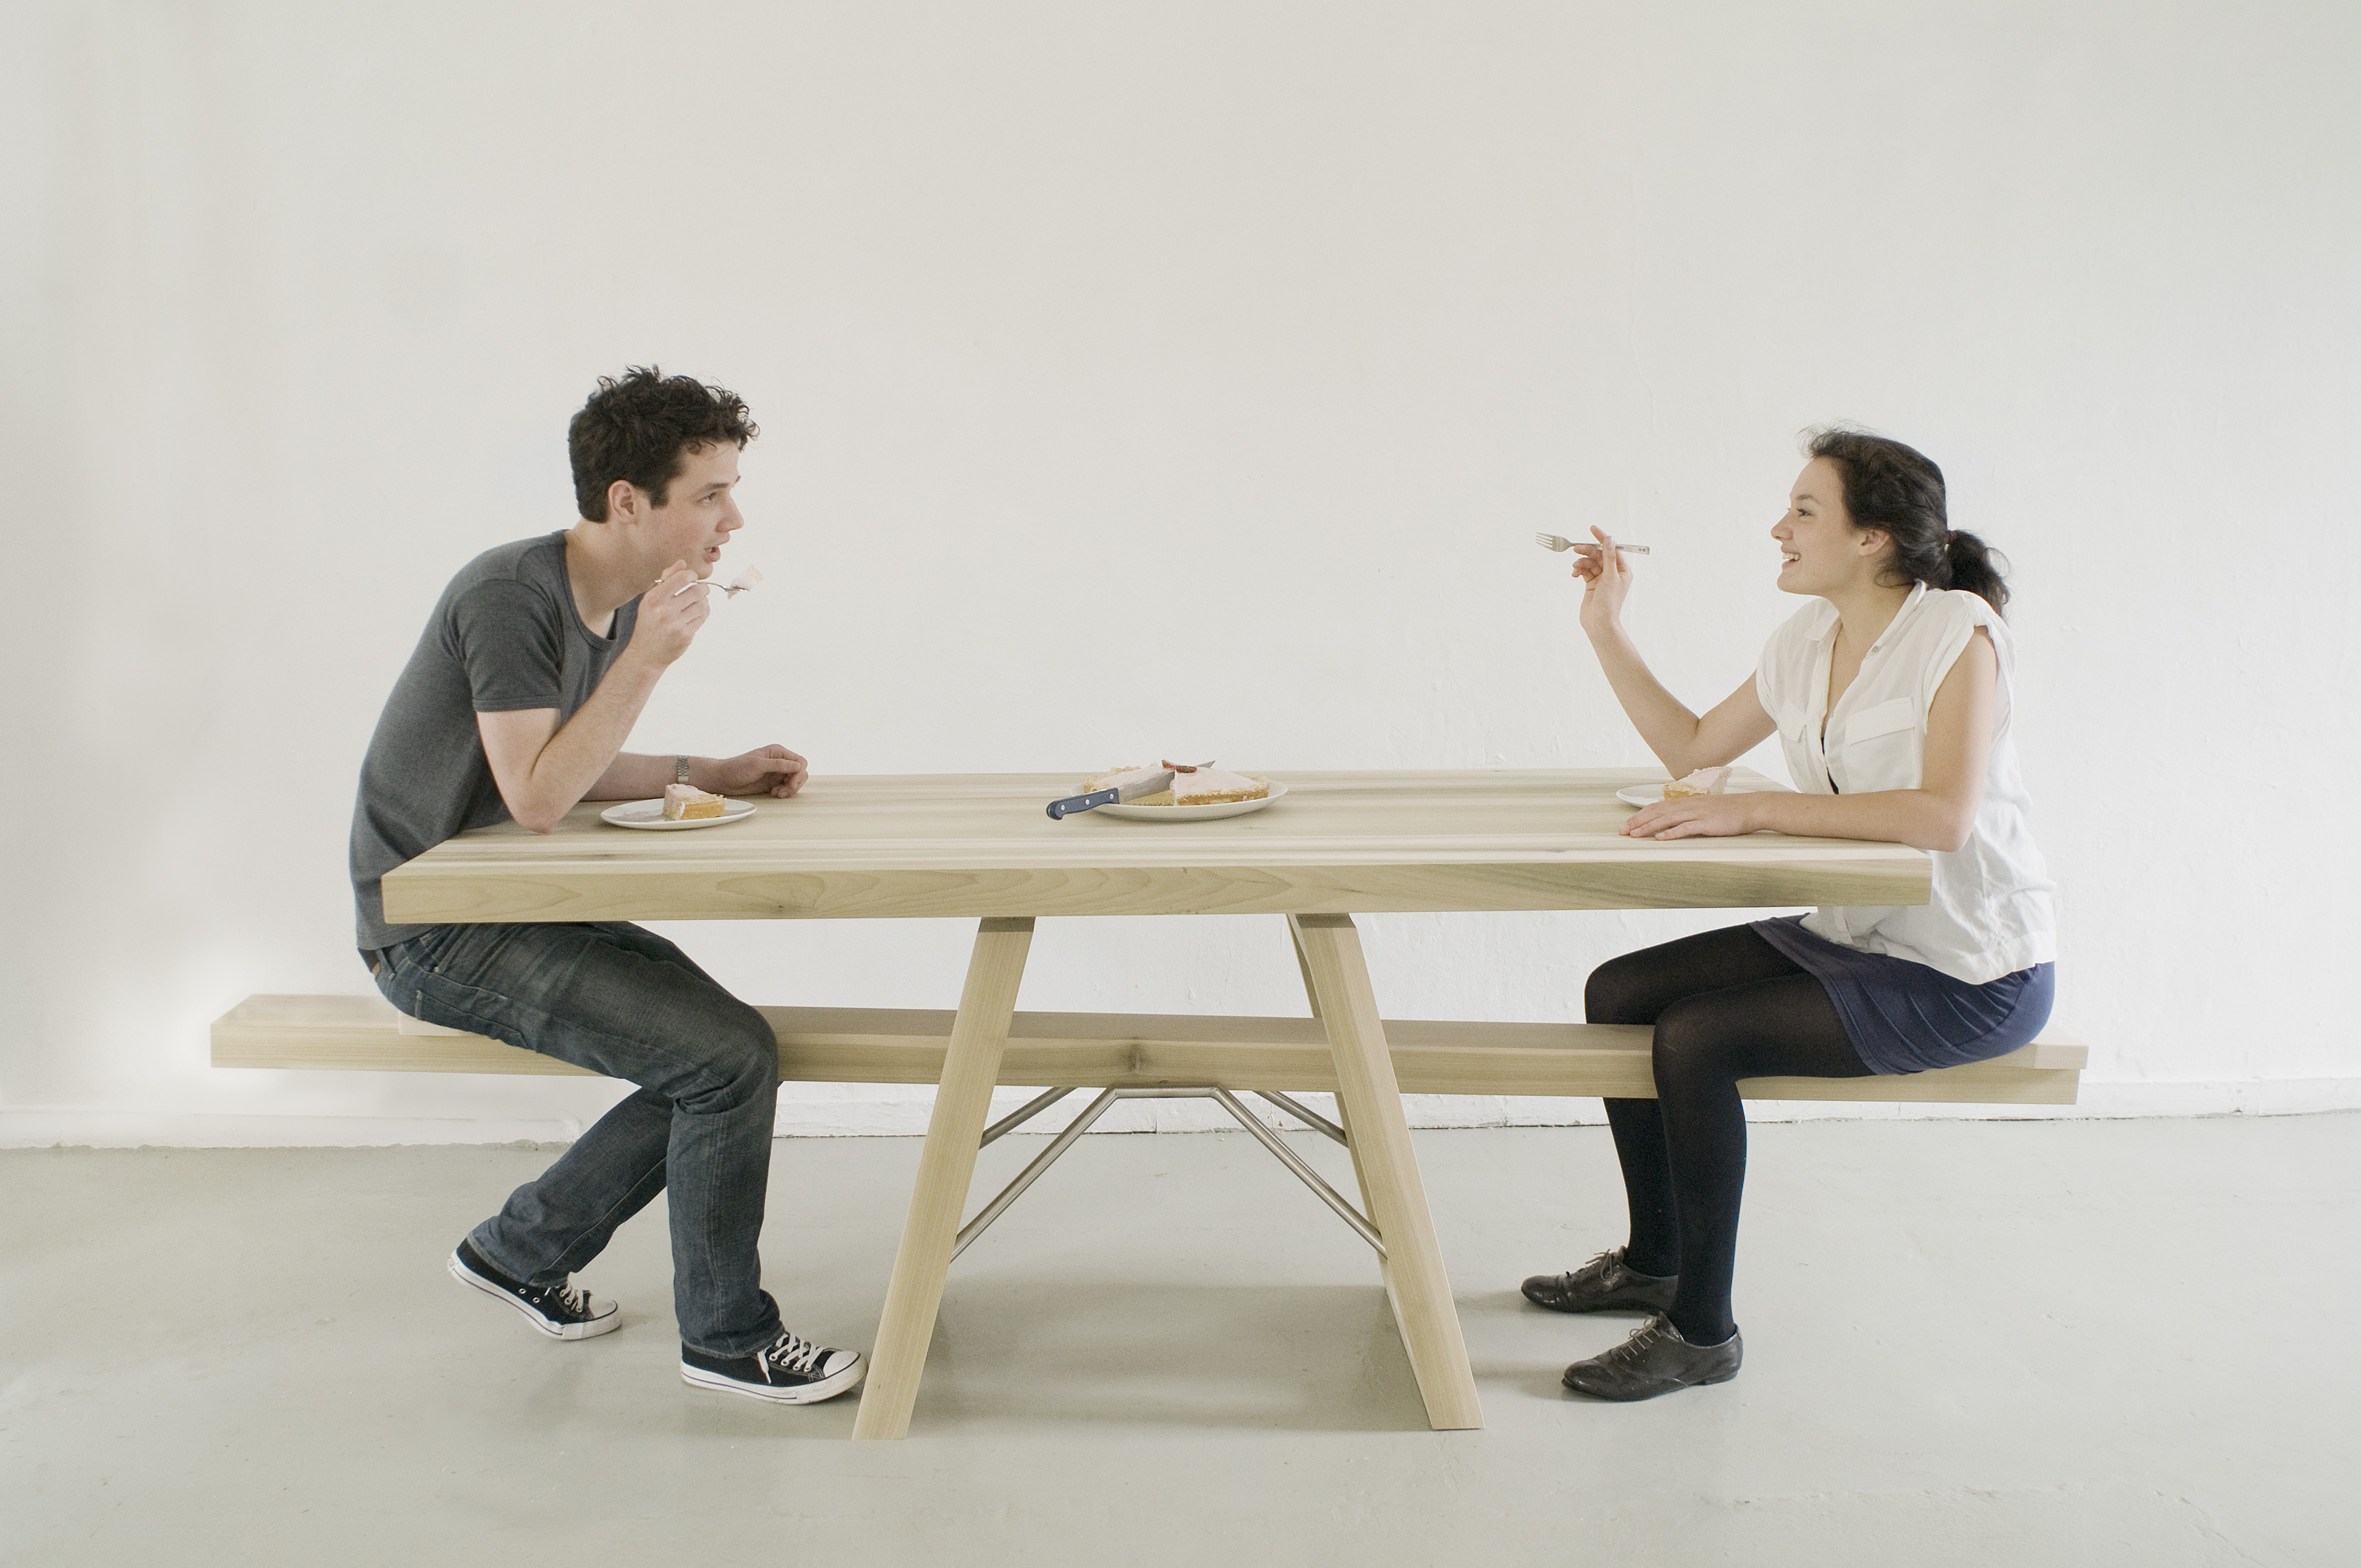 Two Person Dinner Table Courtesytable A Wooden Picnic Style Table With Novel